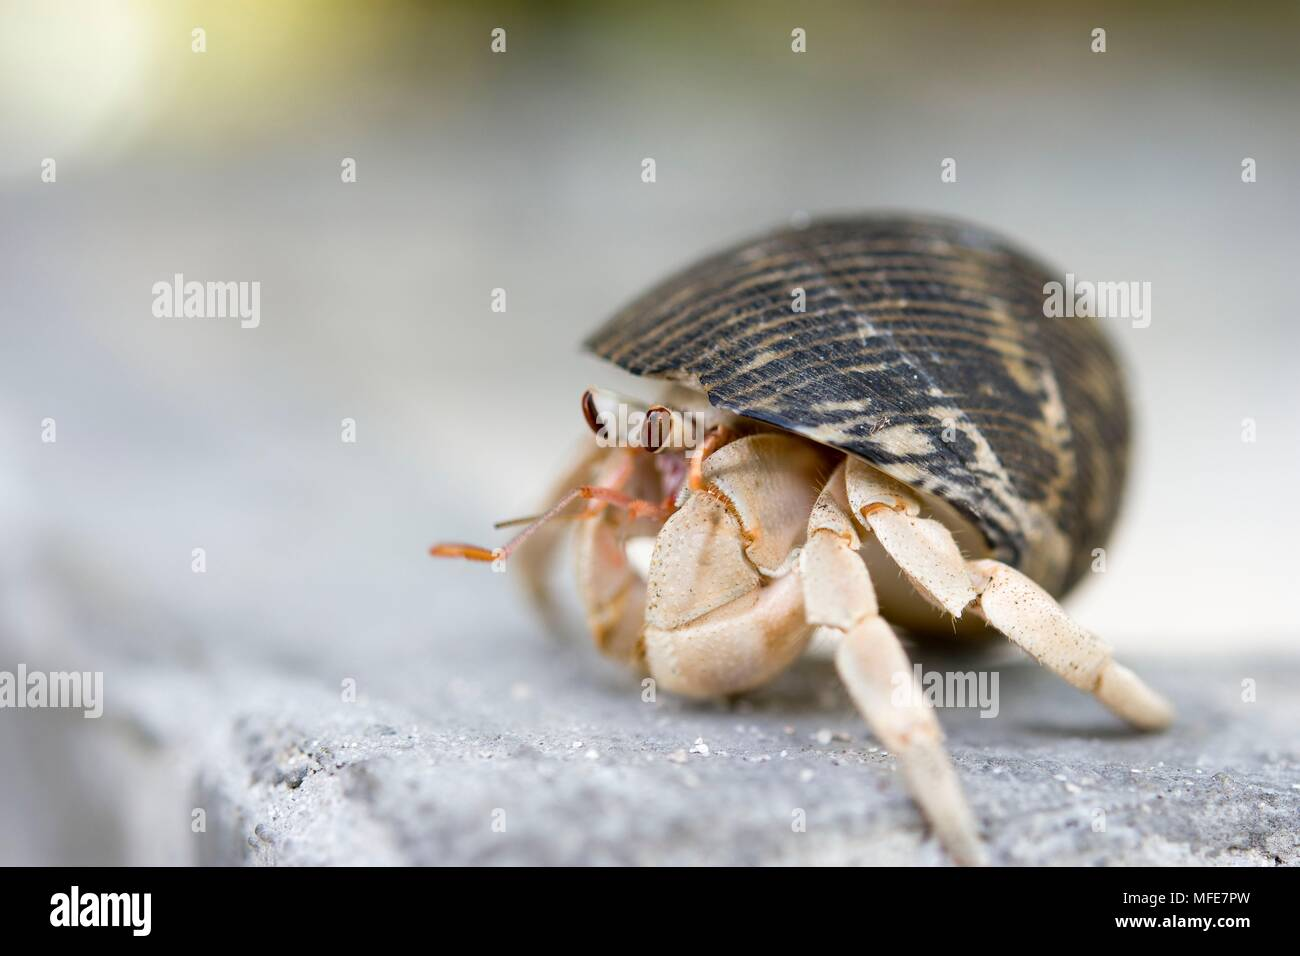 Hermit Crab in the Maldives. - Stock Image